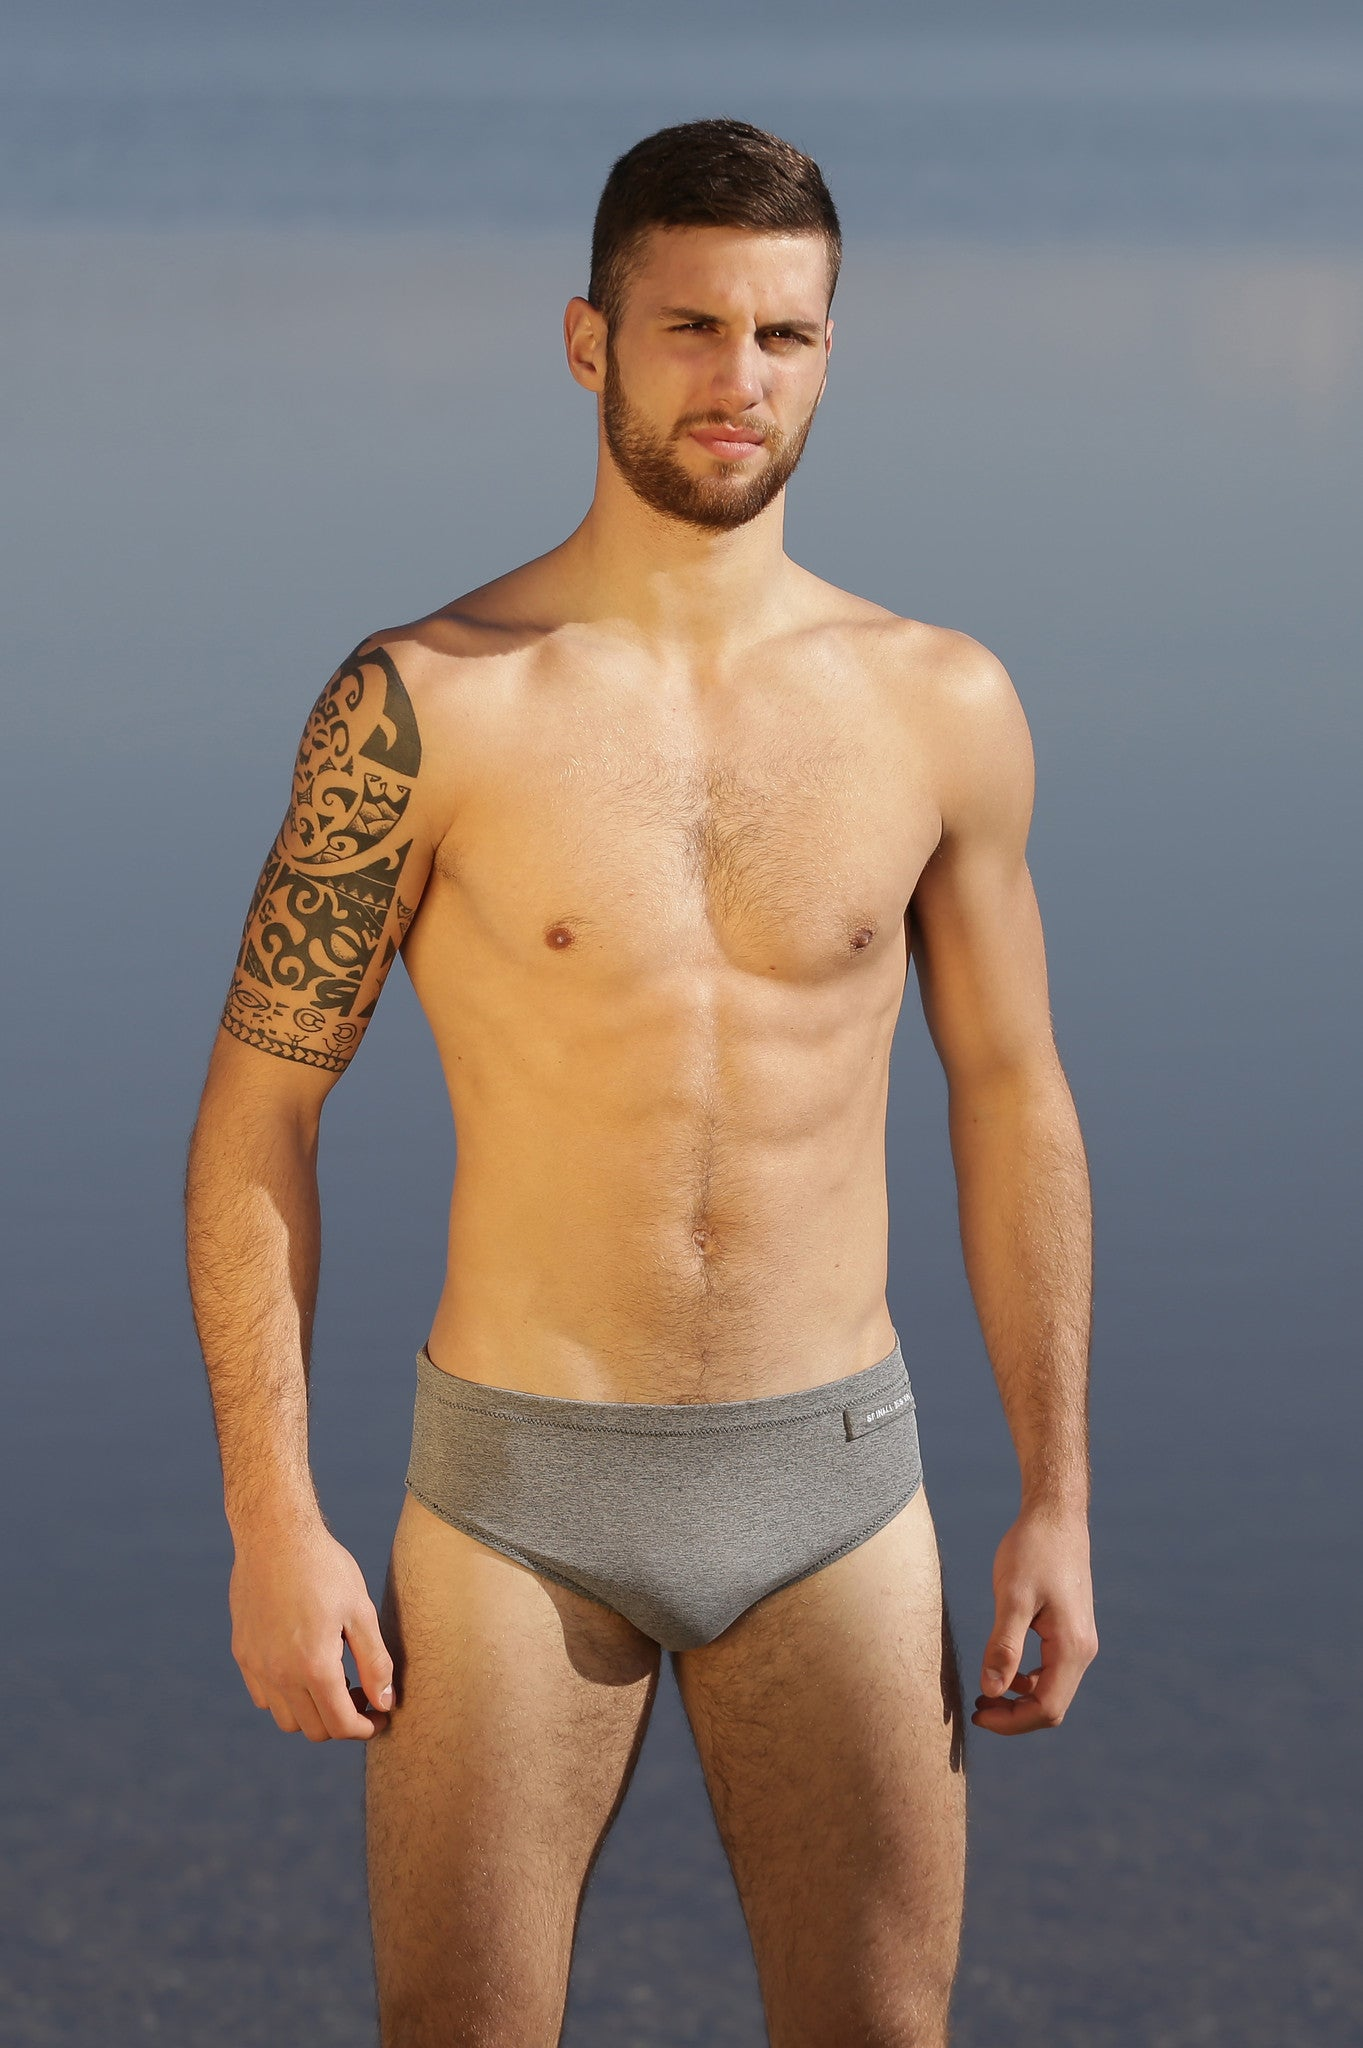 NEVIANO HOMME - H0116 GRIS CHINE - MADE IN FRANCE - avec capteur UV intégré